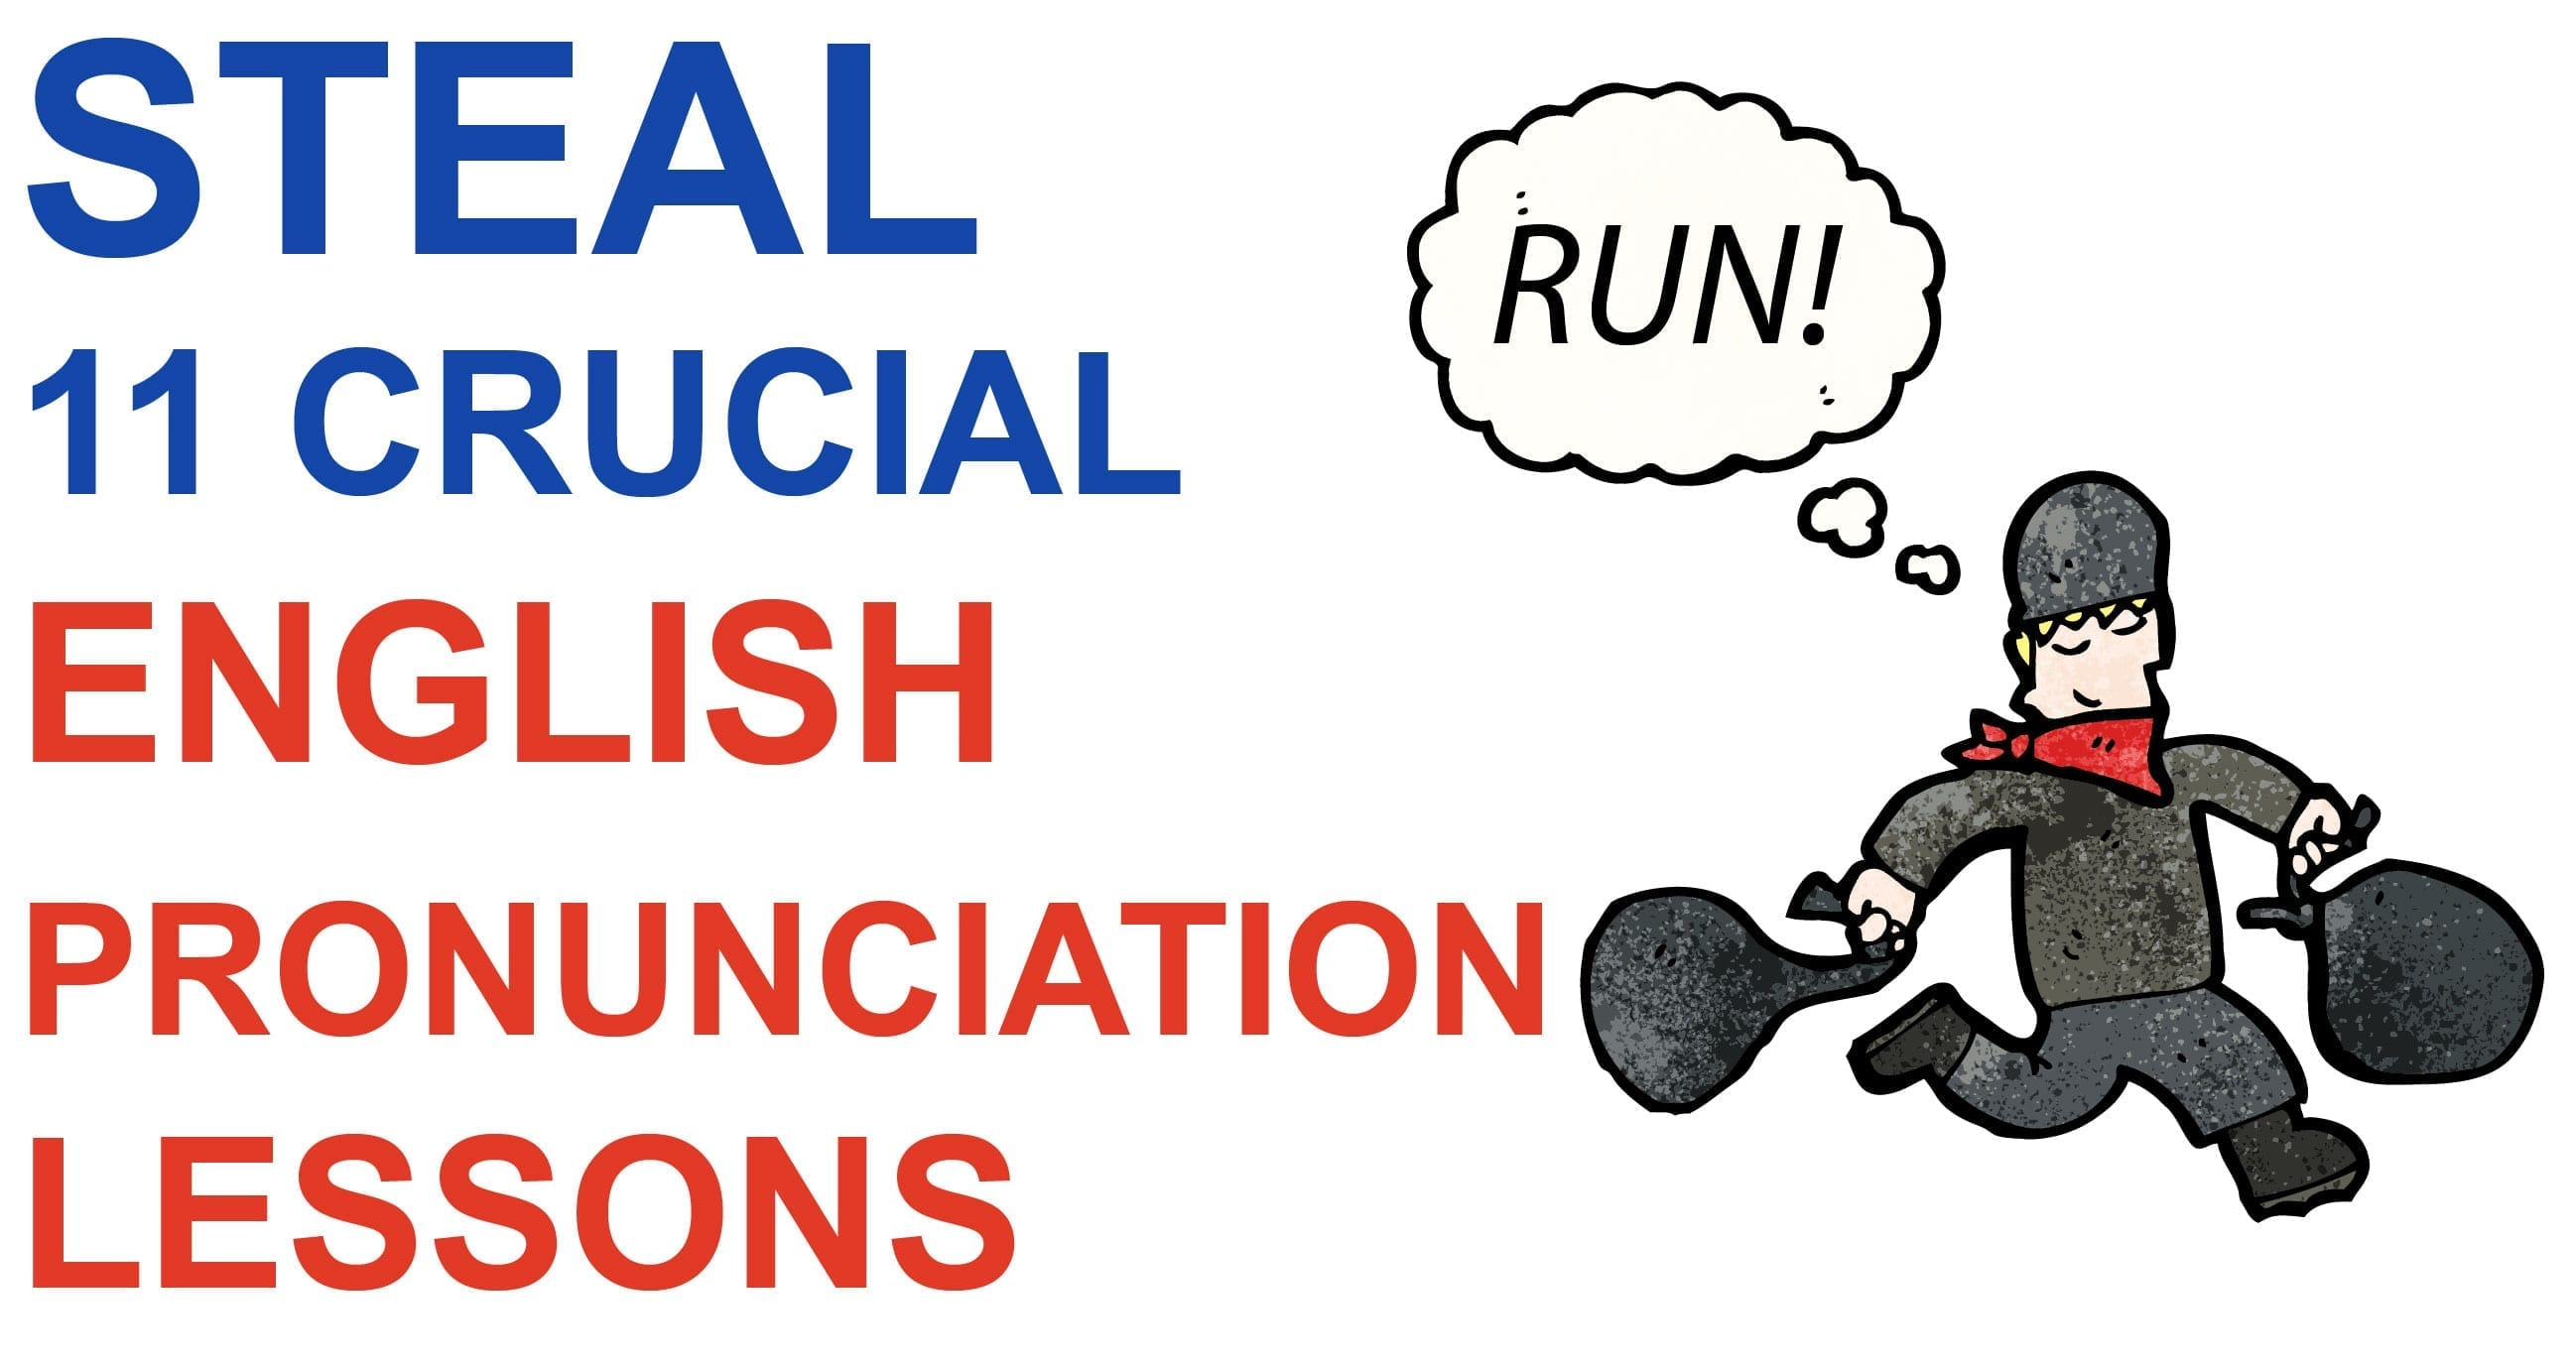 Steal 11 Crucial English Pronunciation Lessons - English